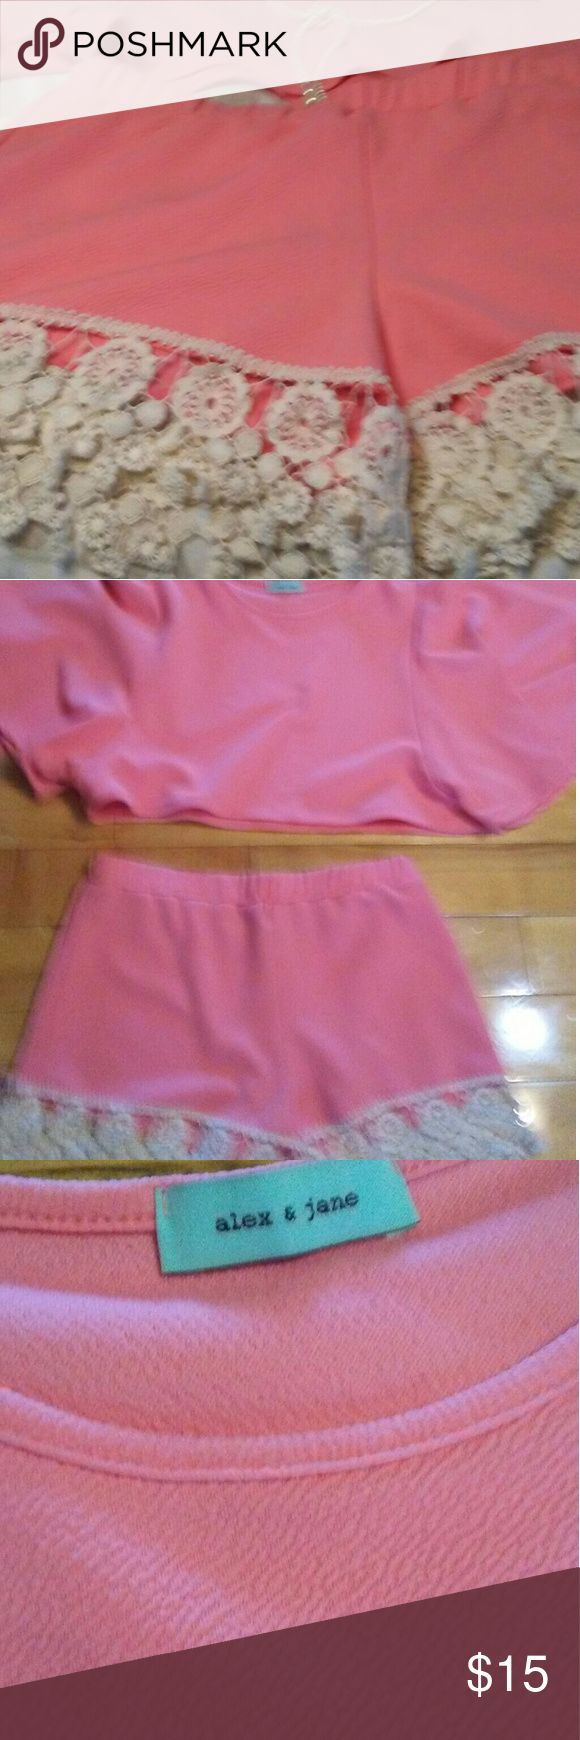 Shorts w/ Top Peach shorts w/ lace trim on bottom of shorts. top comes with the set 2pcs. Very trendy ?? peach w/cream color lace alex & jane  Shorts